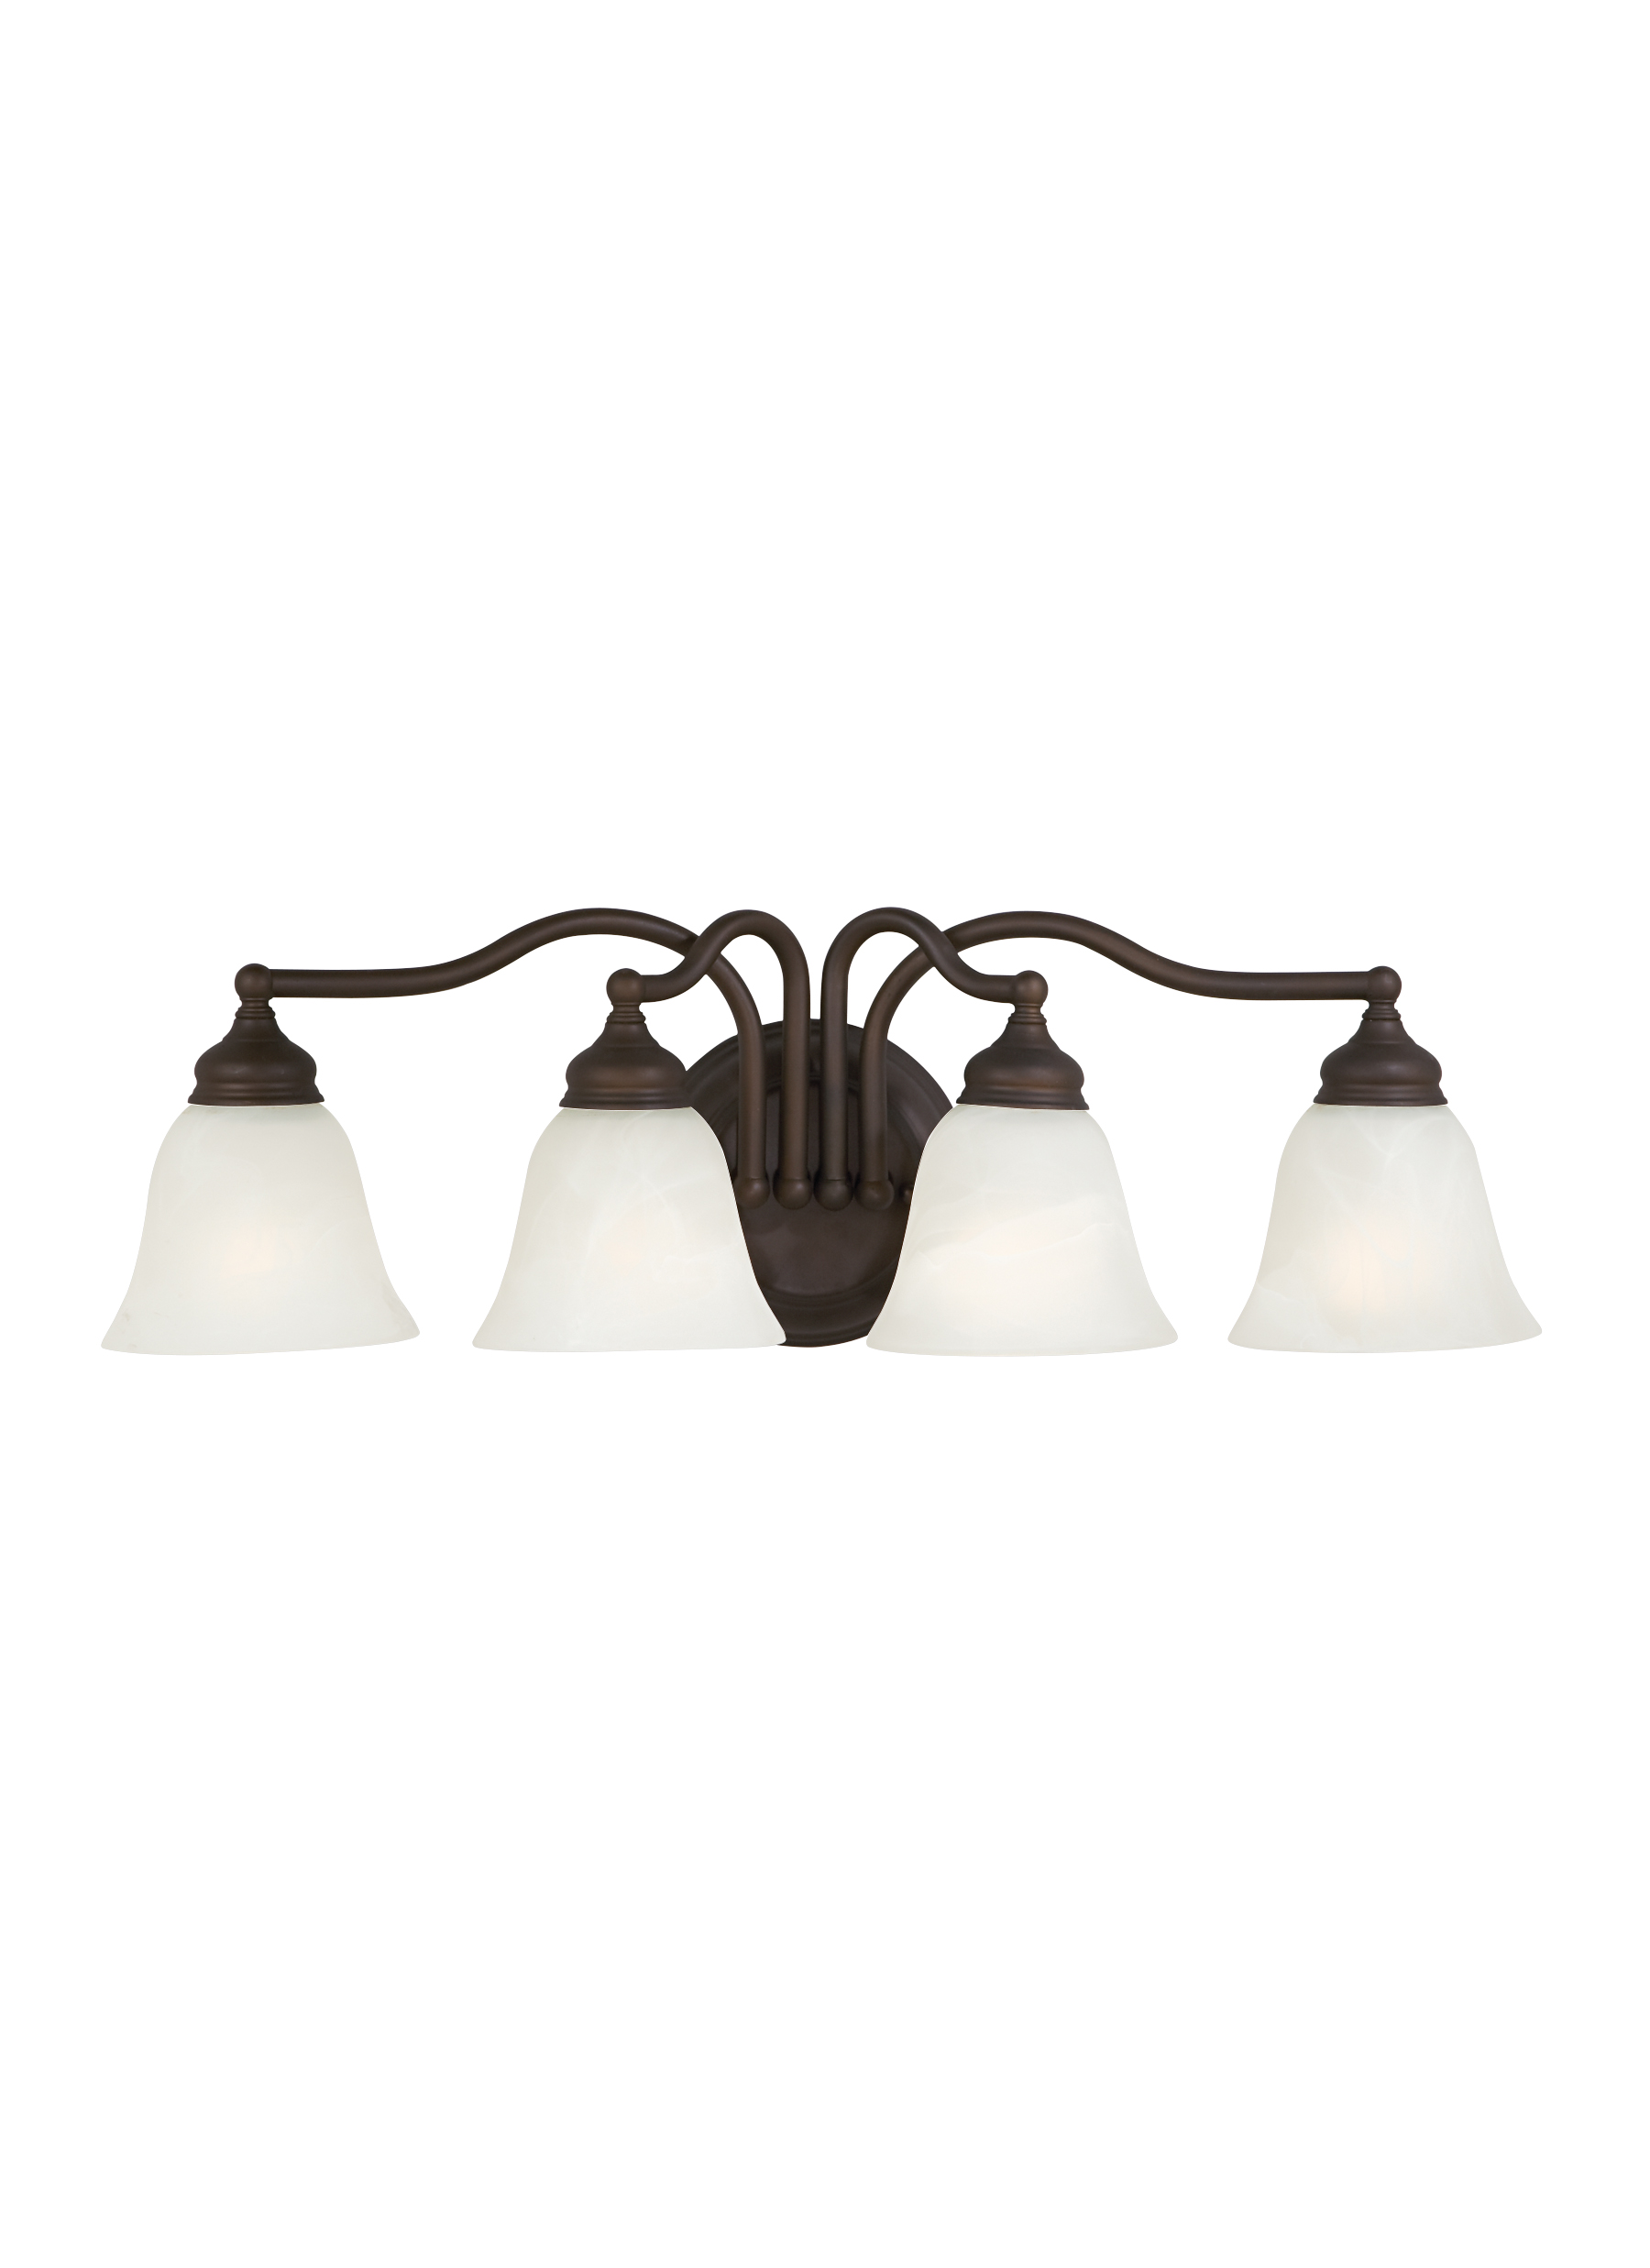 VS6704-ORB,4 - Light Vanity Fixture,Oil Rubbed Bronze